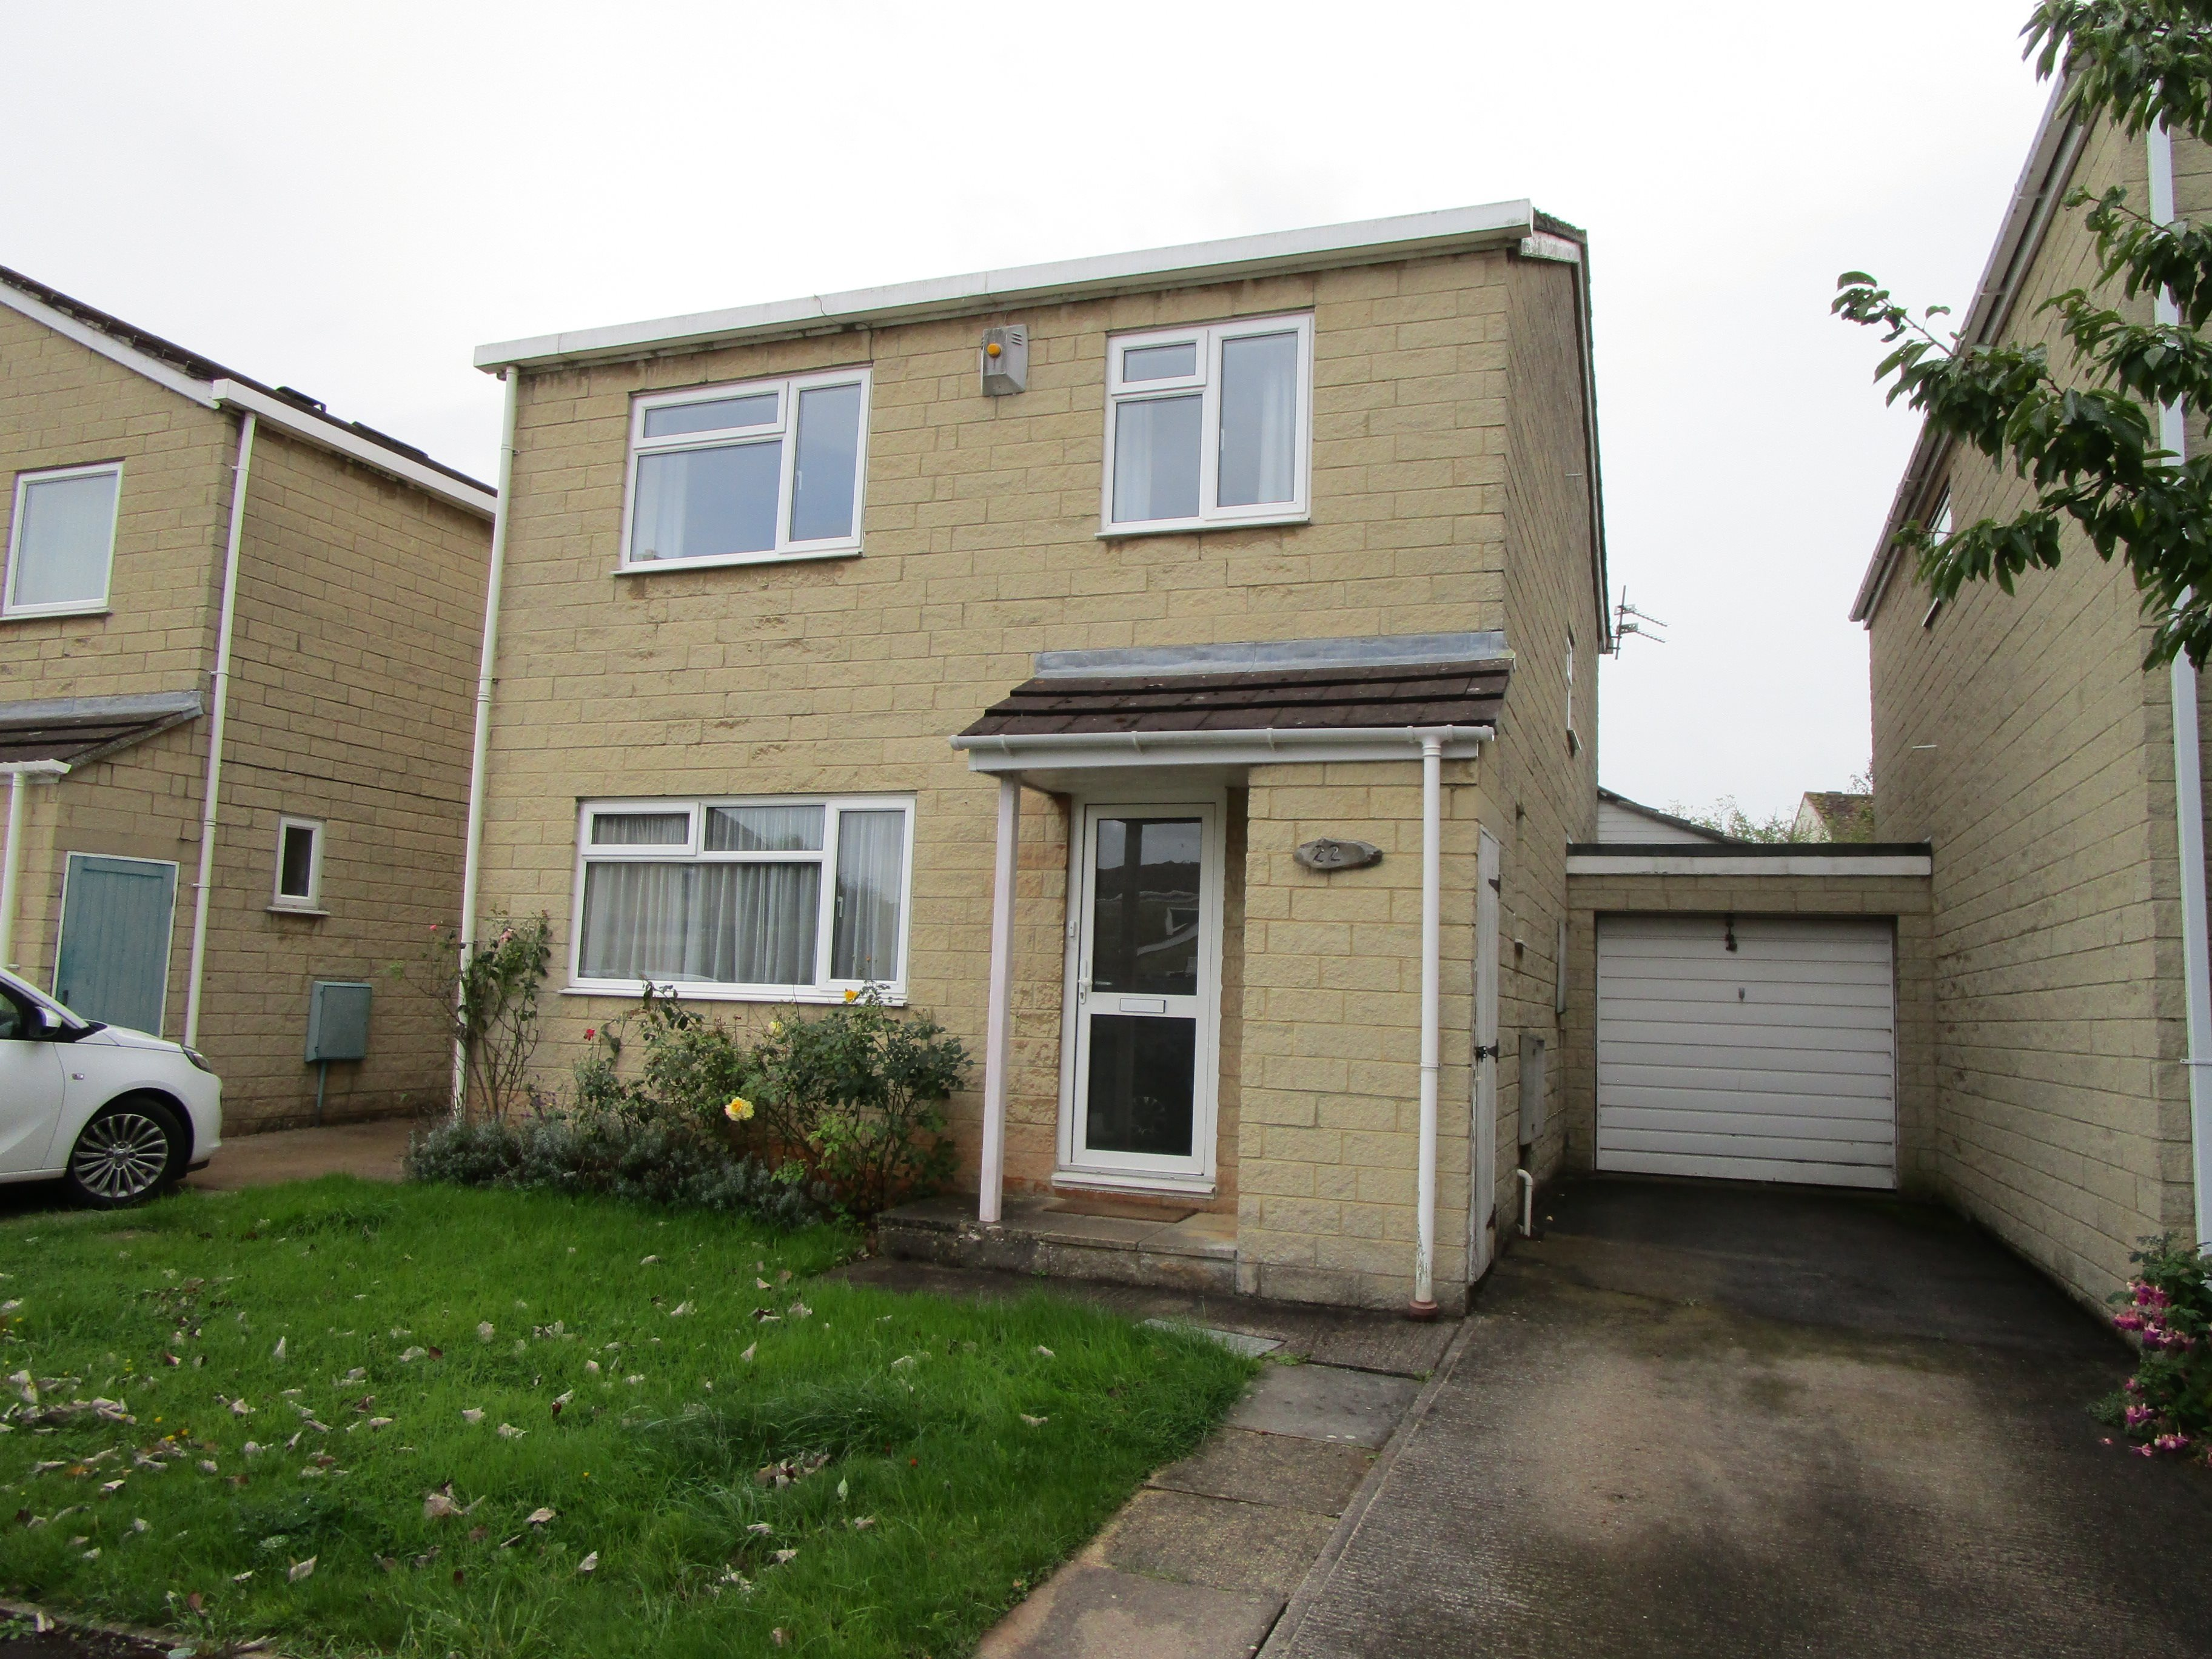 4 bed house to rent in Oldland Common, BS30